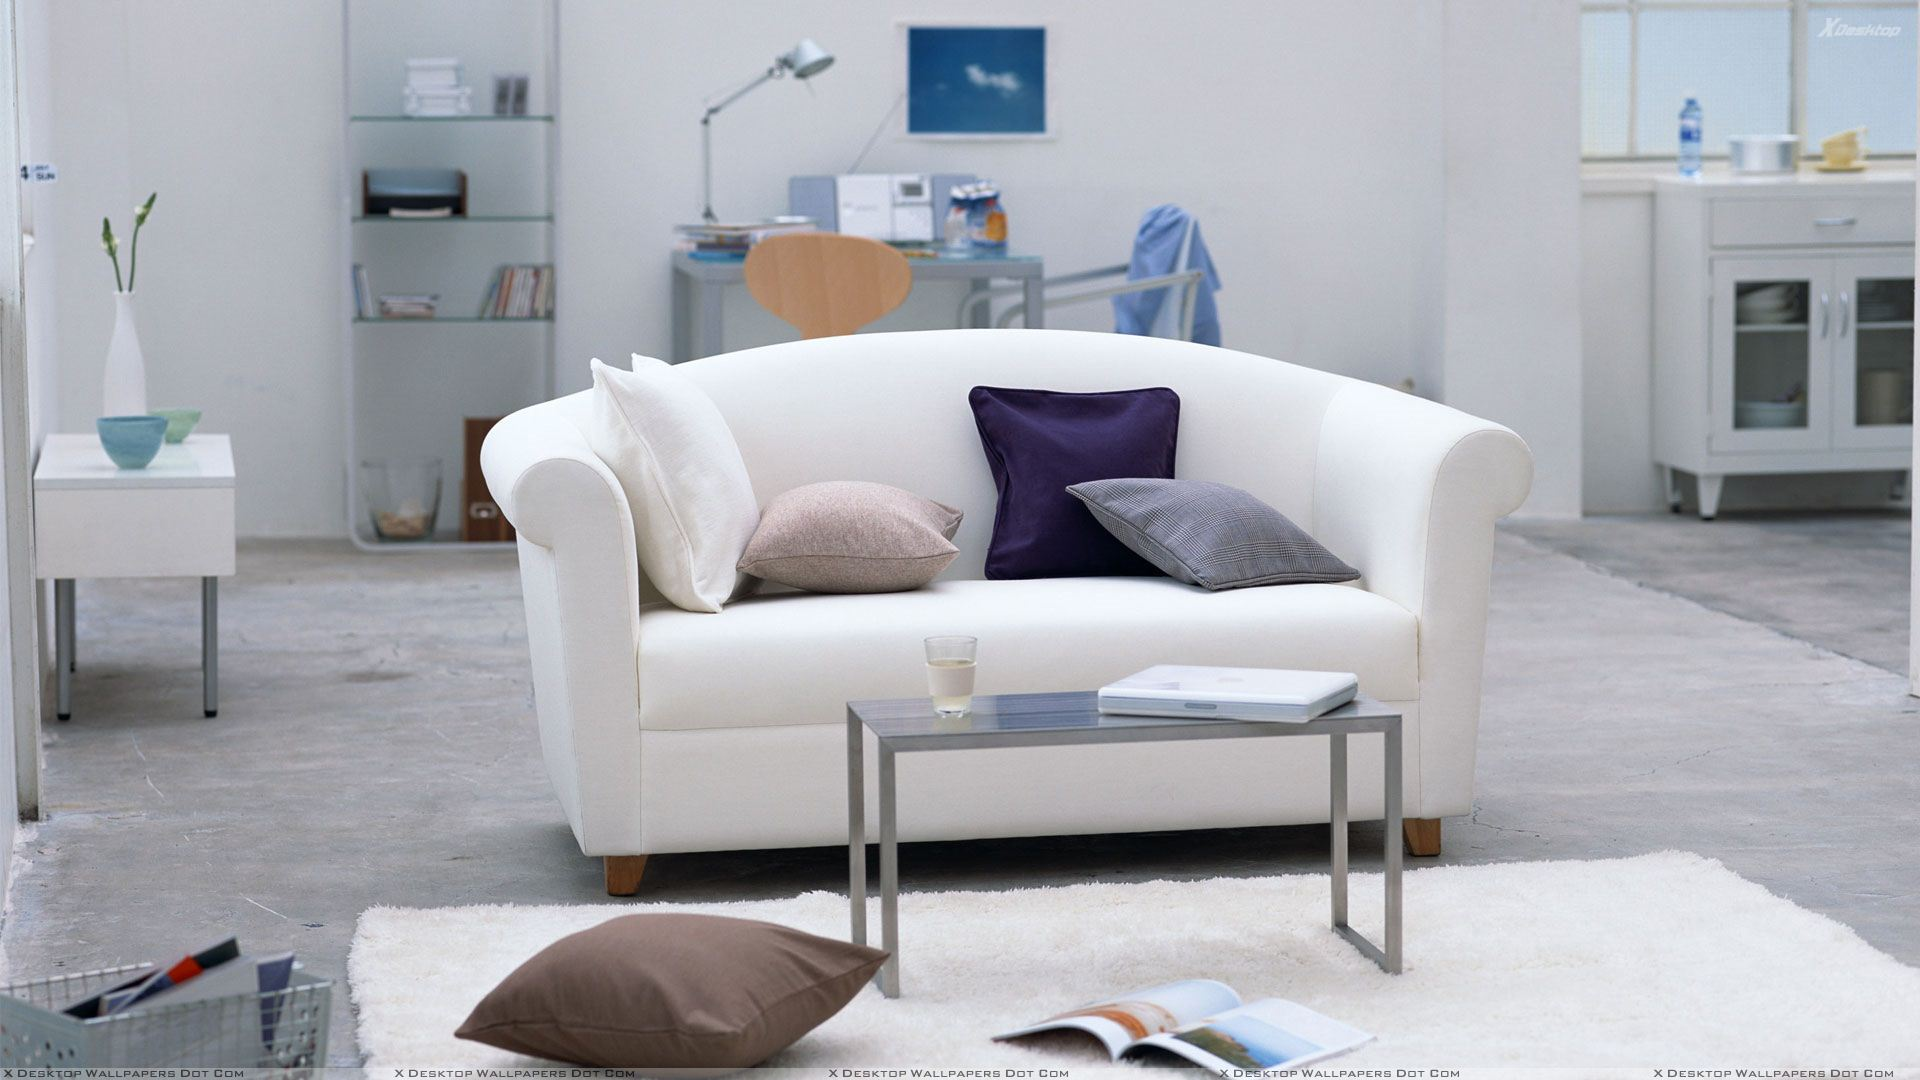 White Sofa And Table In Study Room Wallpaper